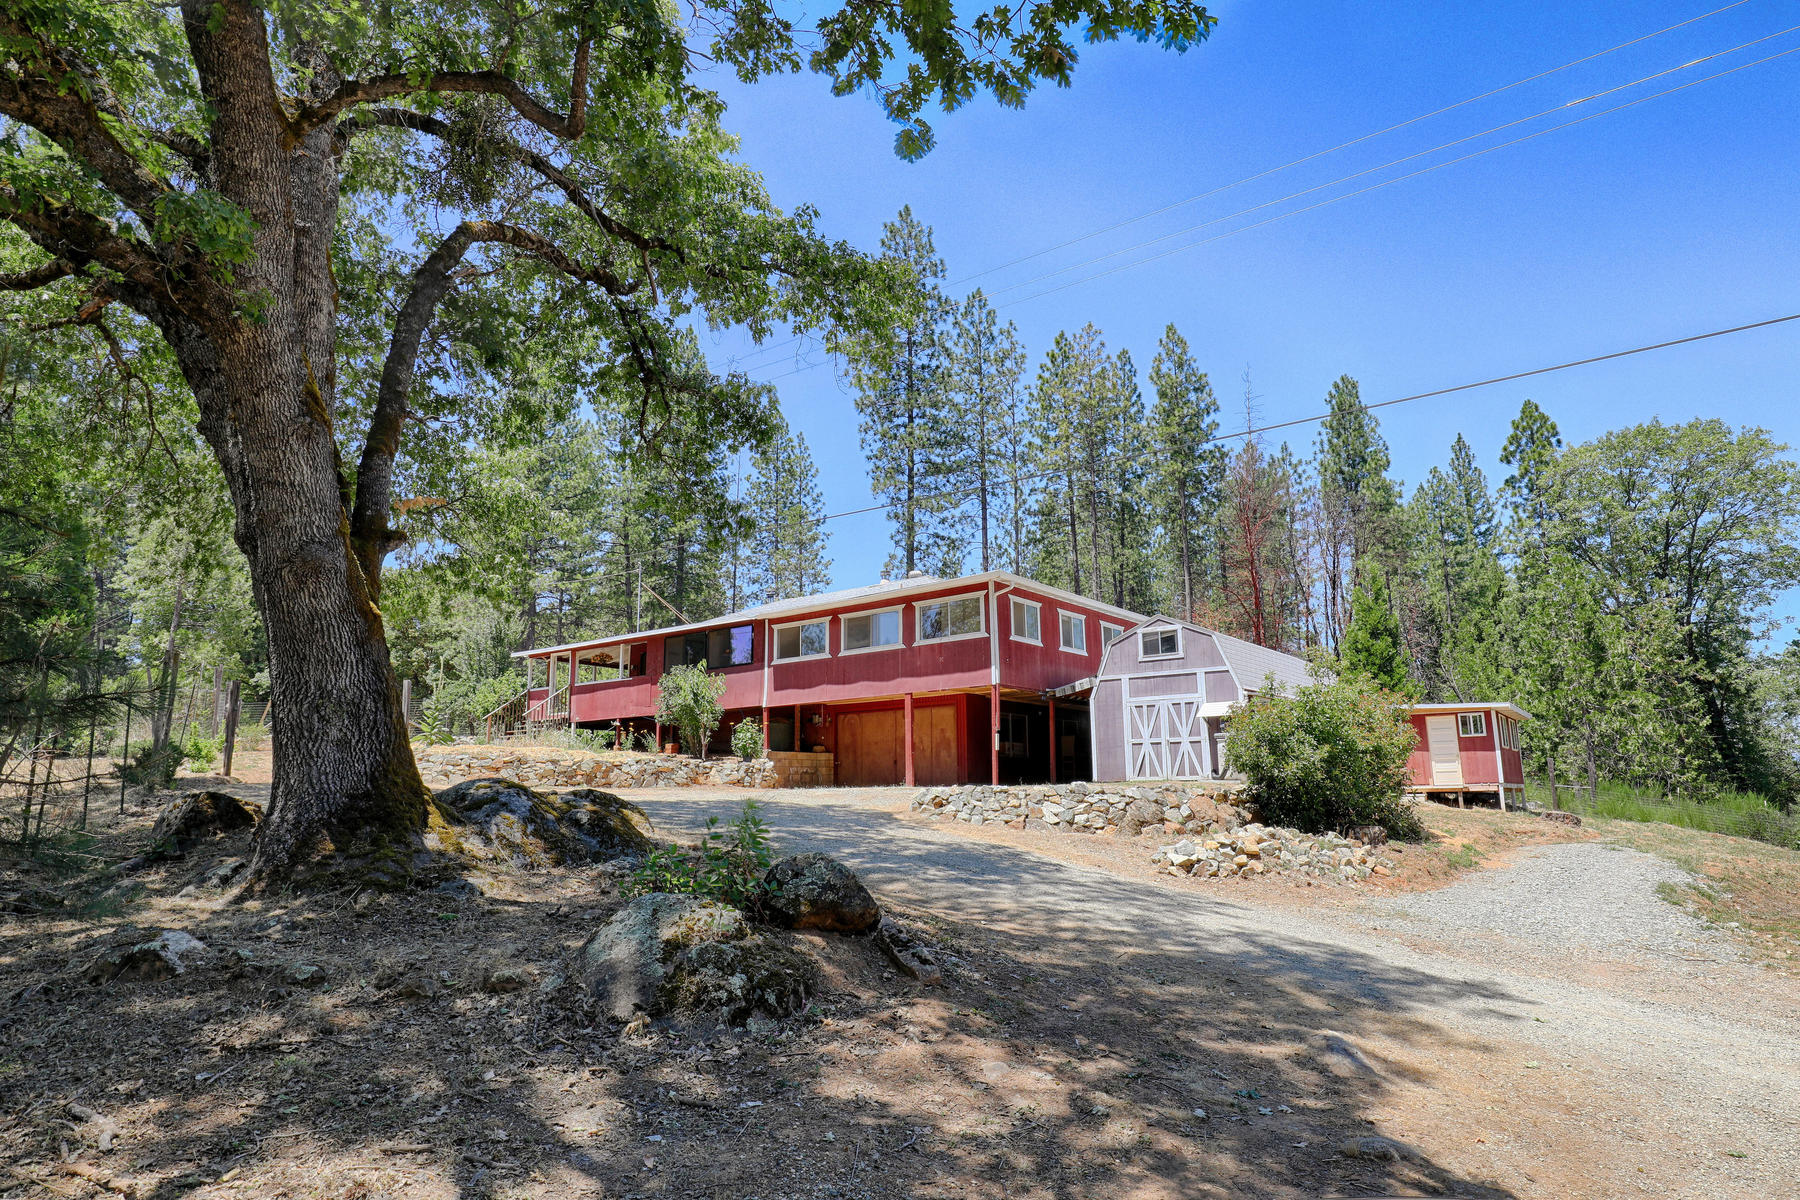 Property for Active at 24590 Copel Lane, Nevada City, CA 95959 24590 Copel Lane Nevada City, California 95959 United States